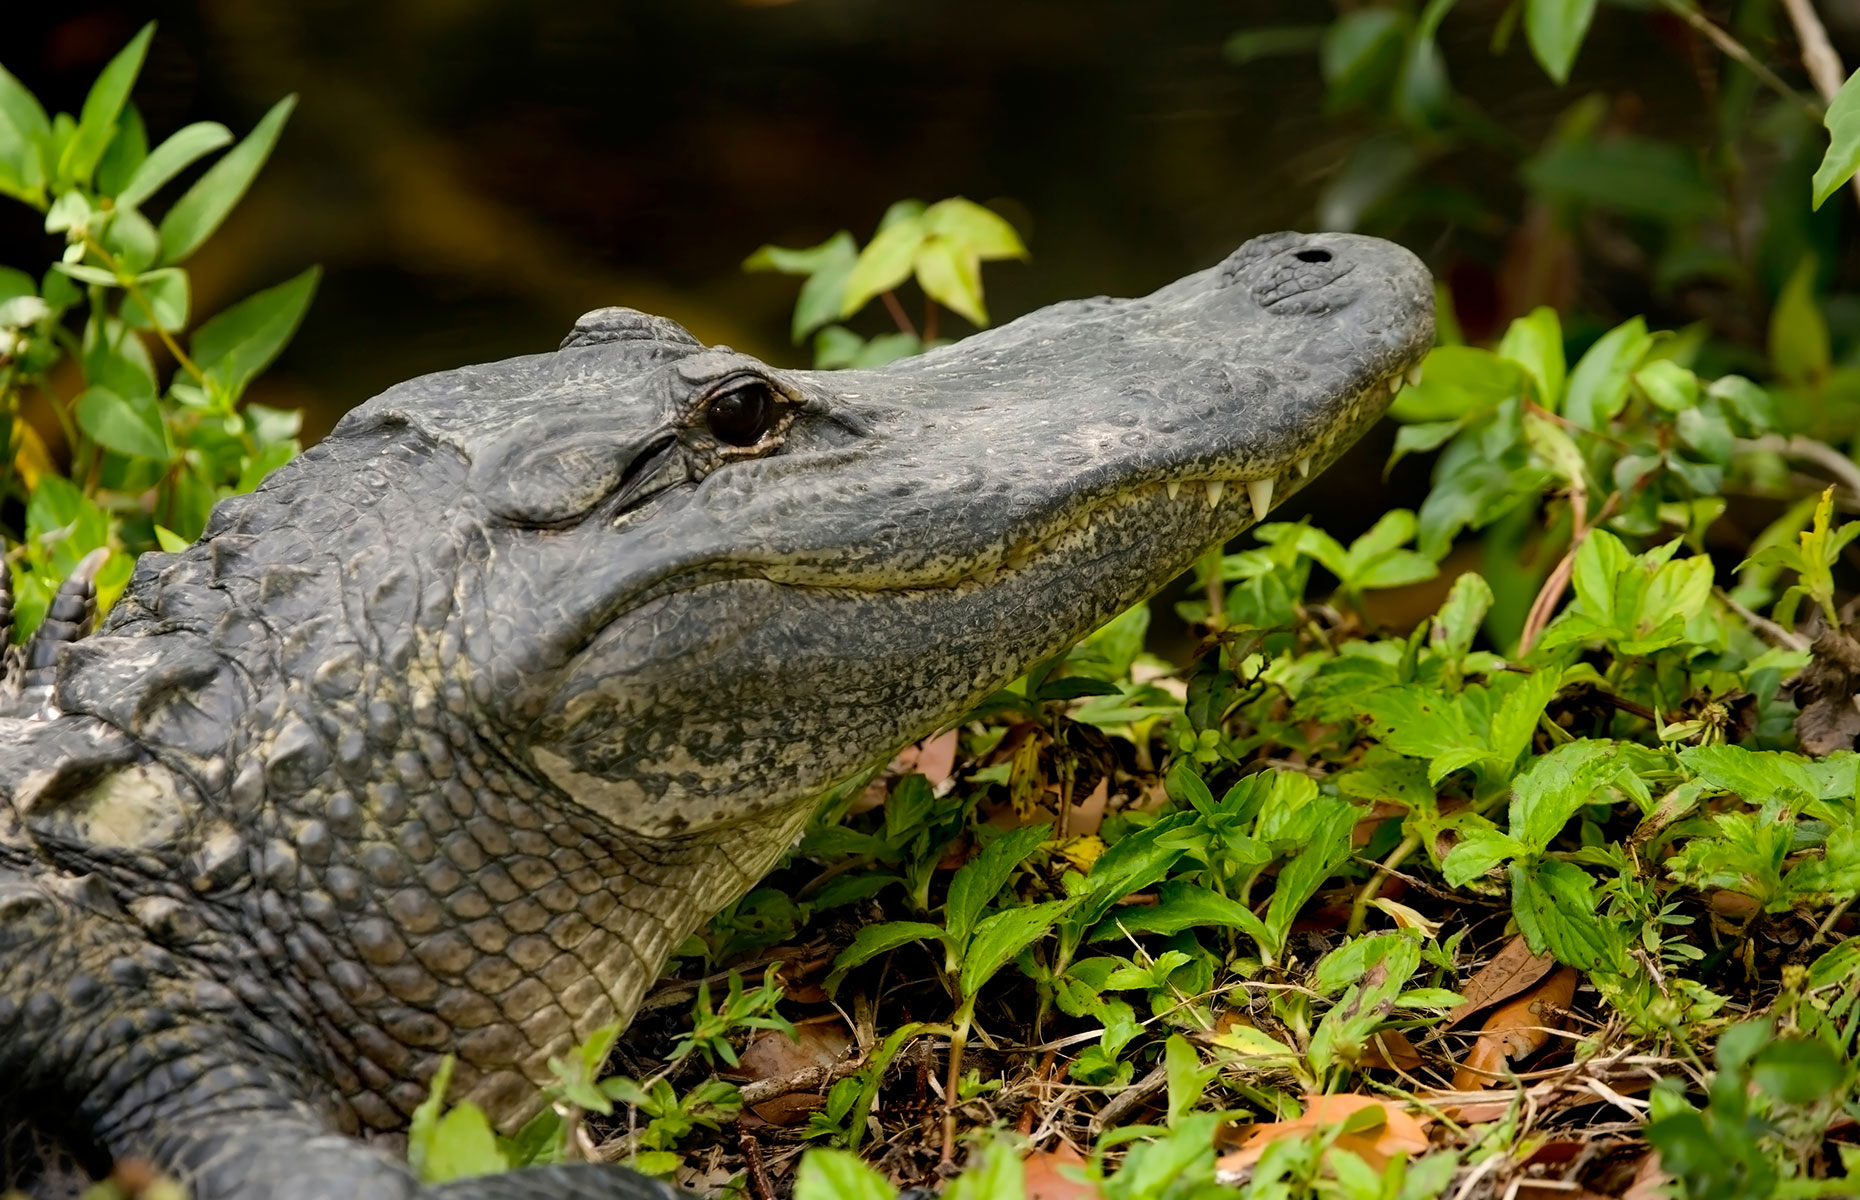 A Floridian alligator (image: Thomas Levine/Shutterstock)